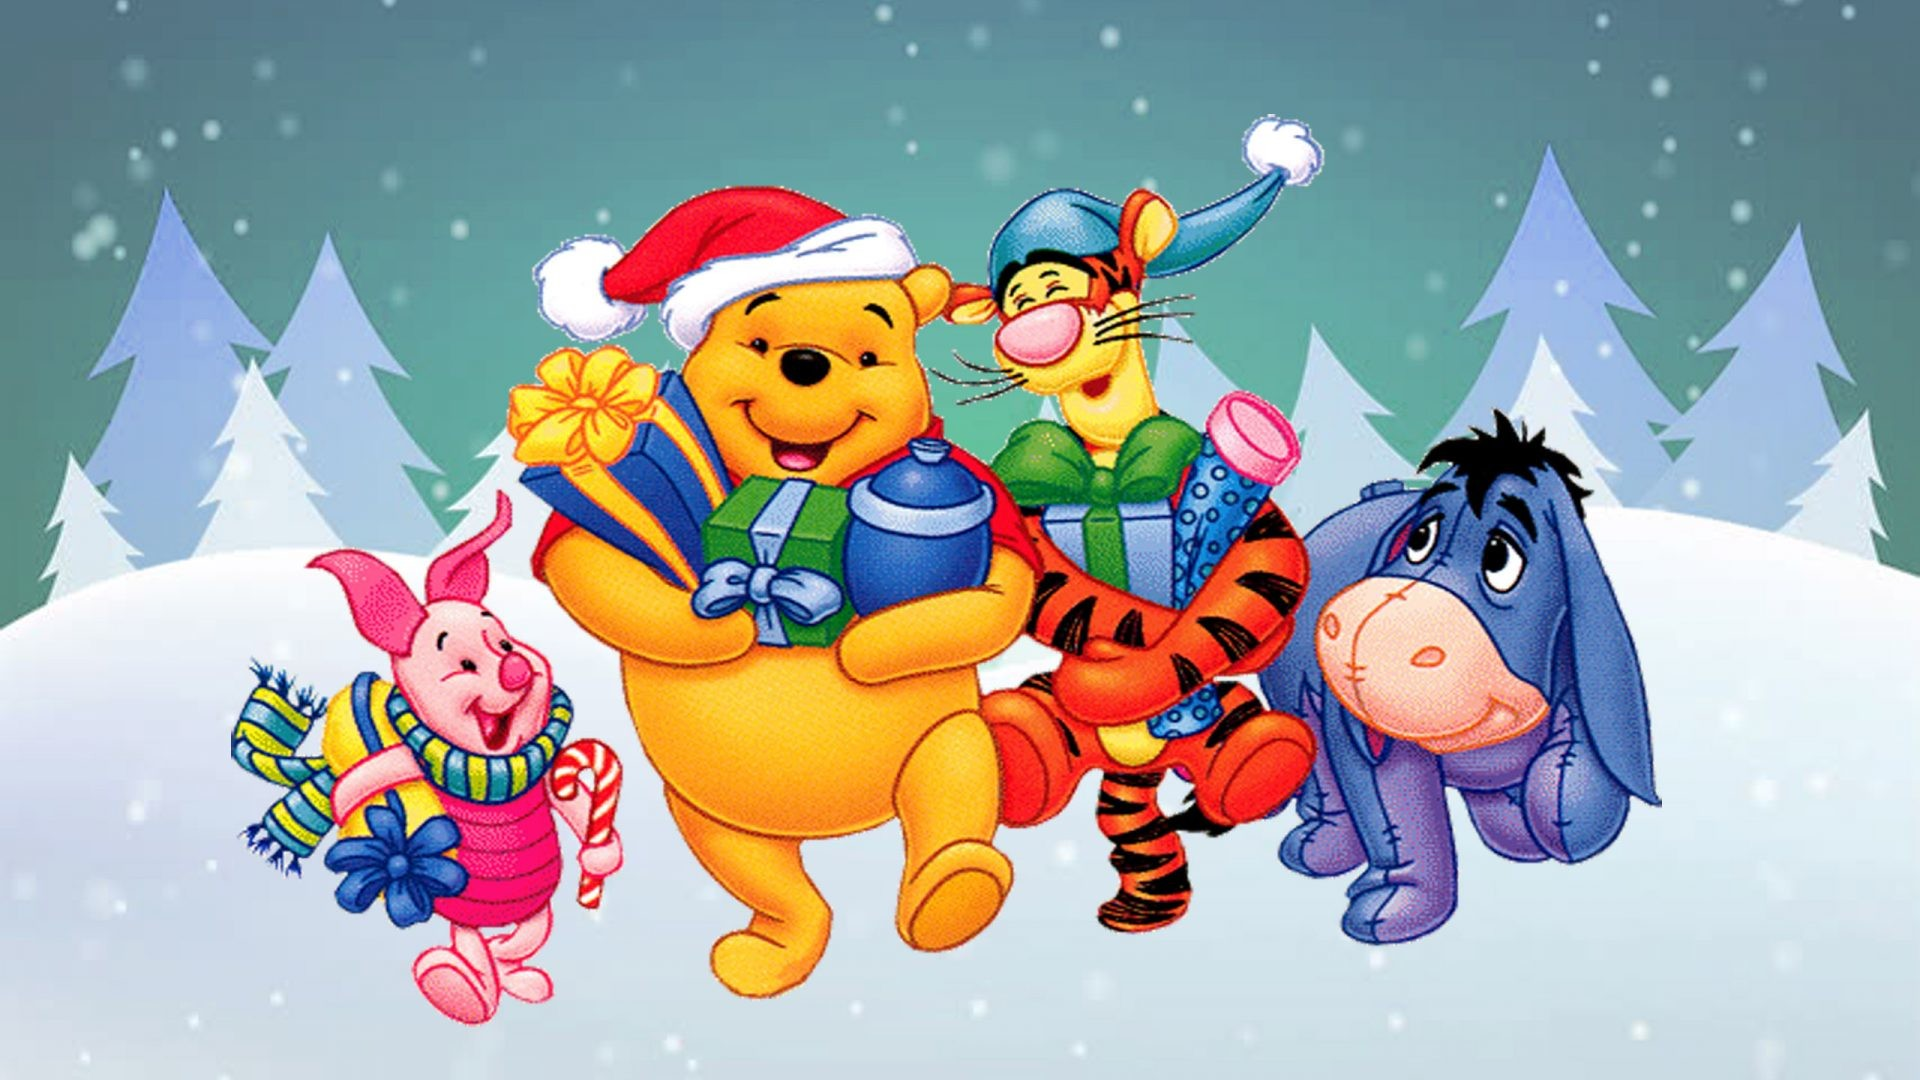 Winnie The Pooh And Christmas Too.Winnie The Pooh Christmas Wallpaper 46 Images